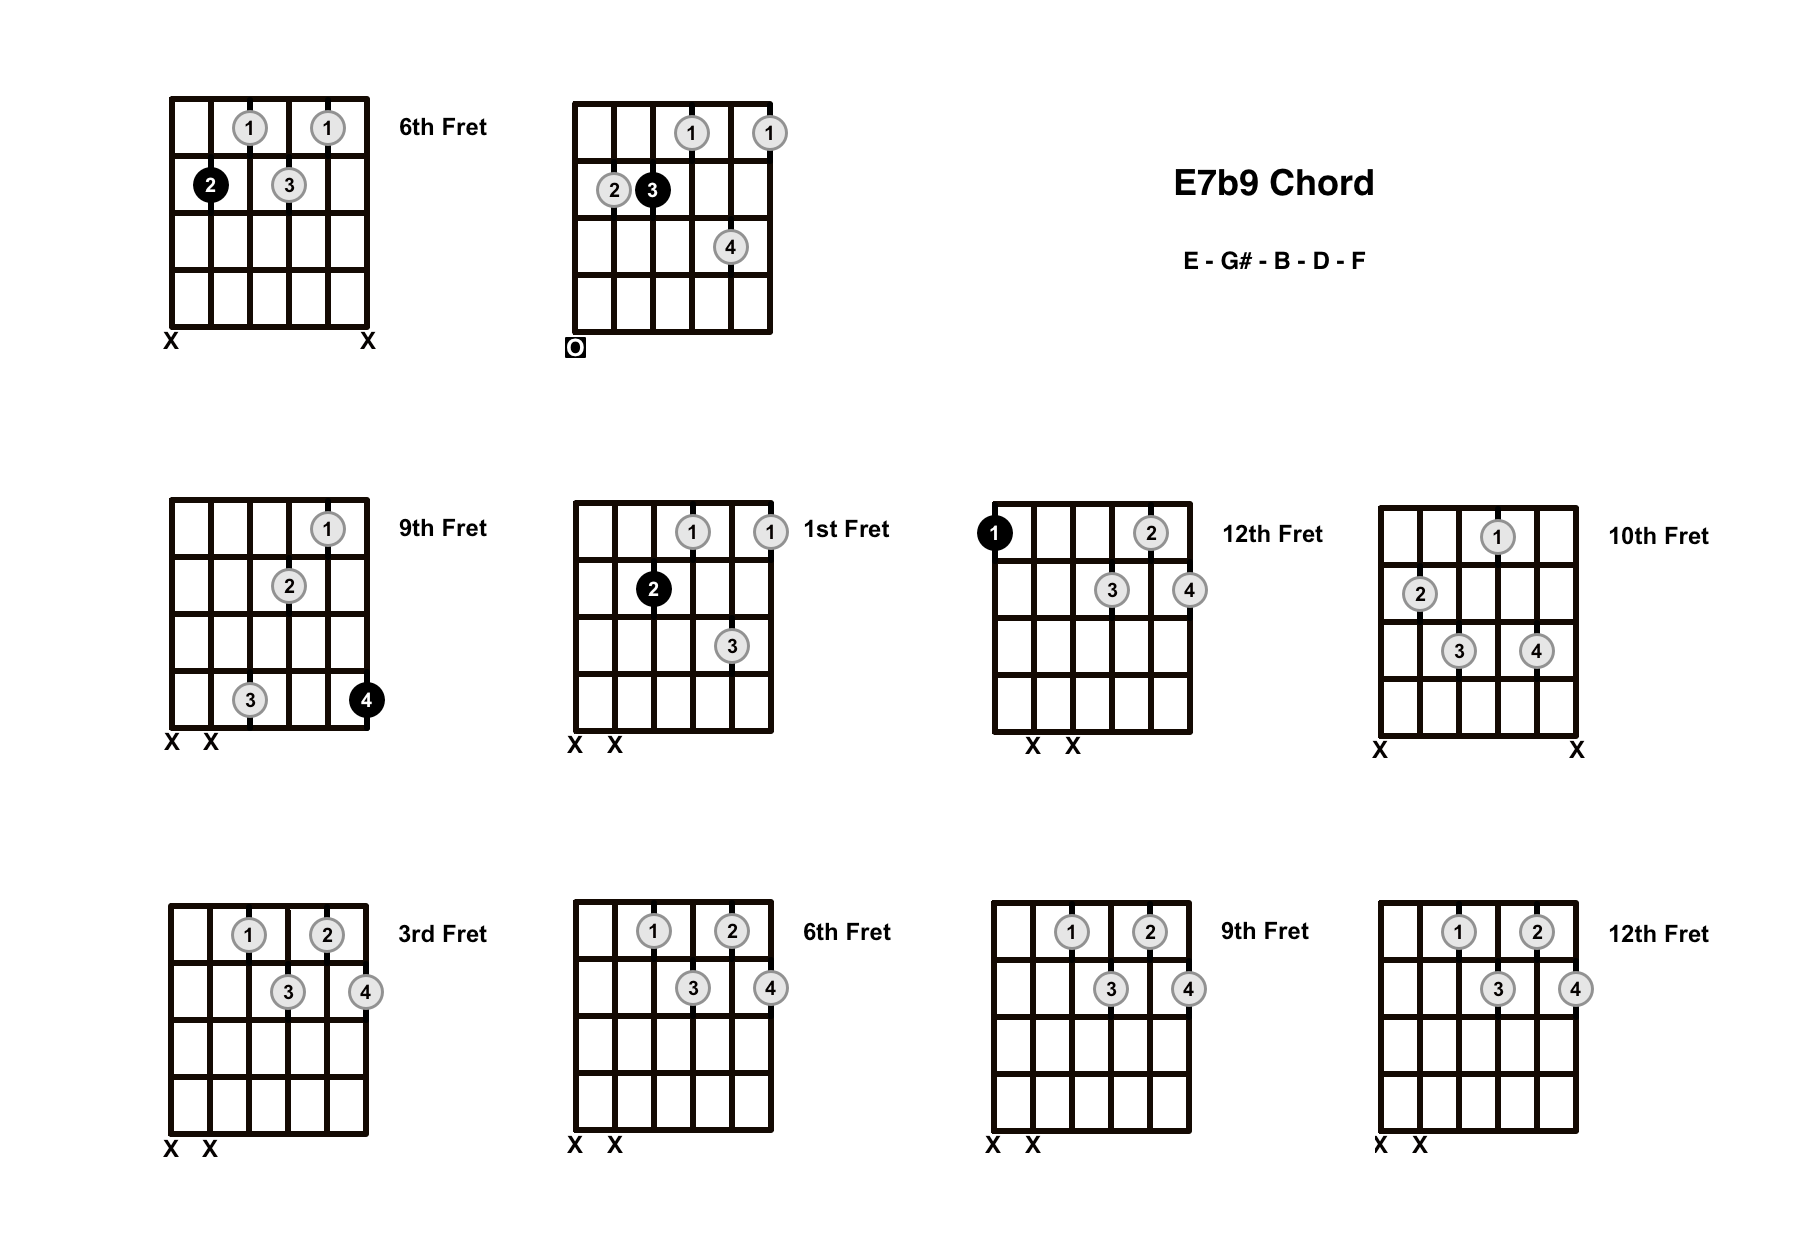 E7b9 Chord On The Guitar (E7 Flat 9) – Diagrams, Finger Positions and Theory